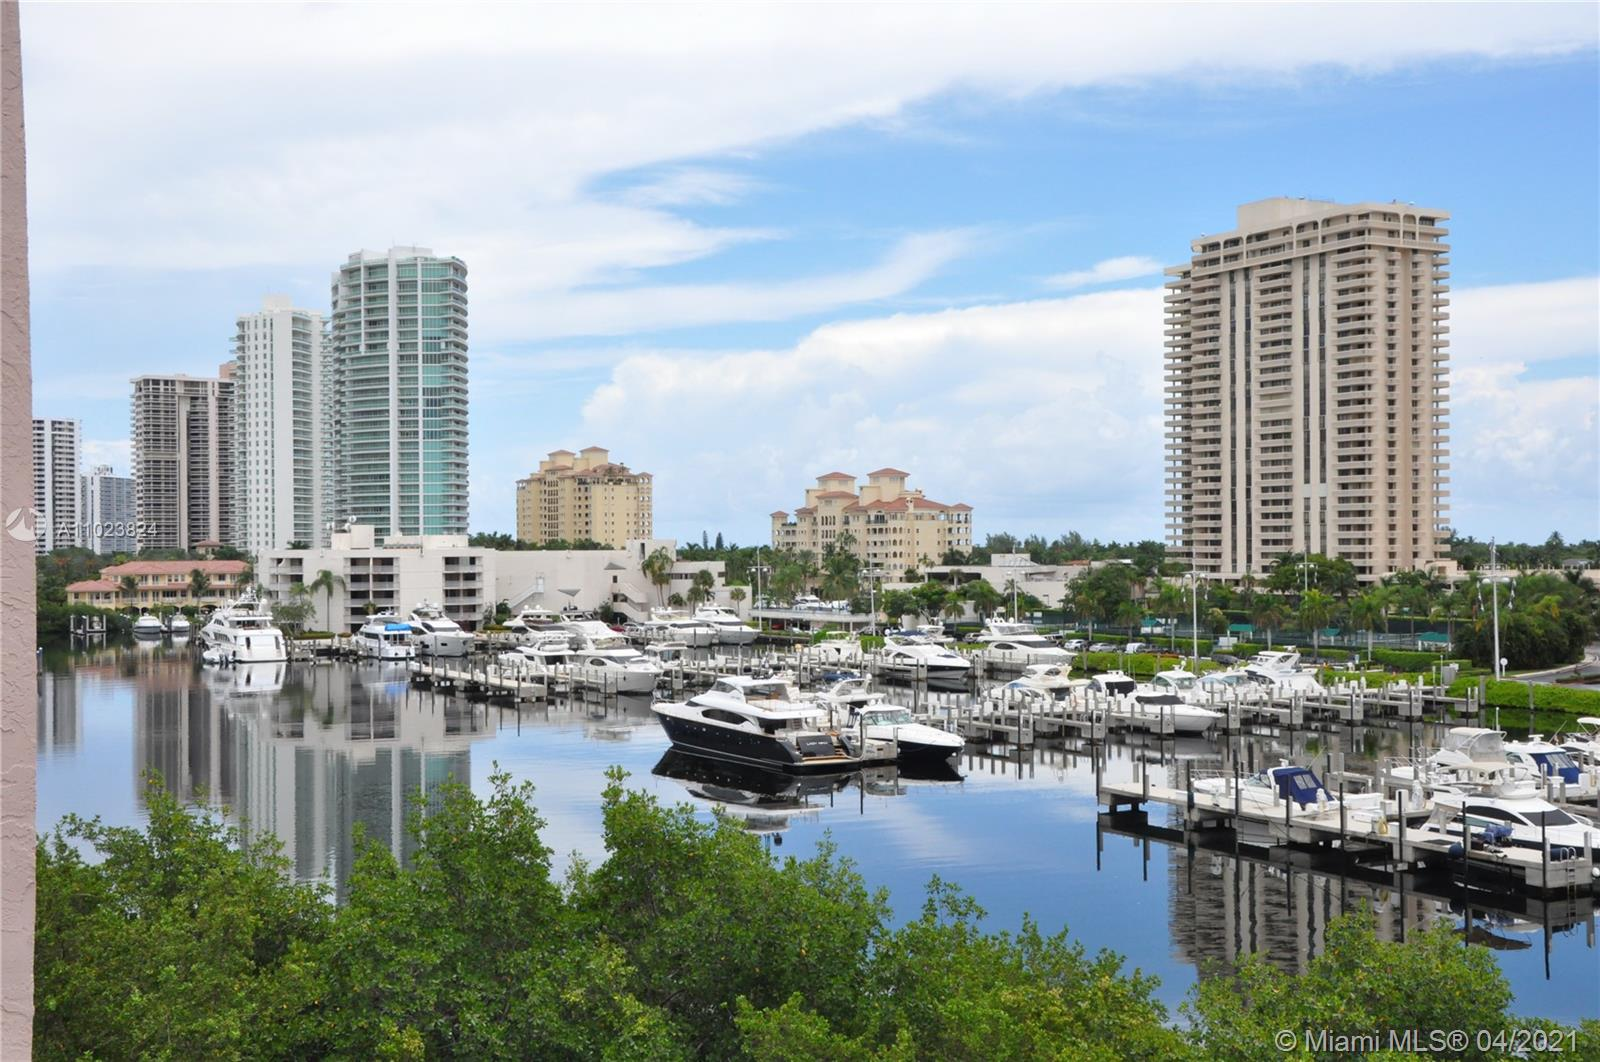 Yacht Club 6 at Aventura #4-104 - 19801 E Country Club Dr #4-104, Aventura, FL 33180